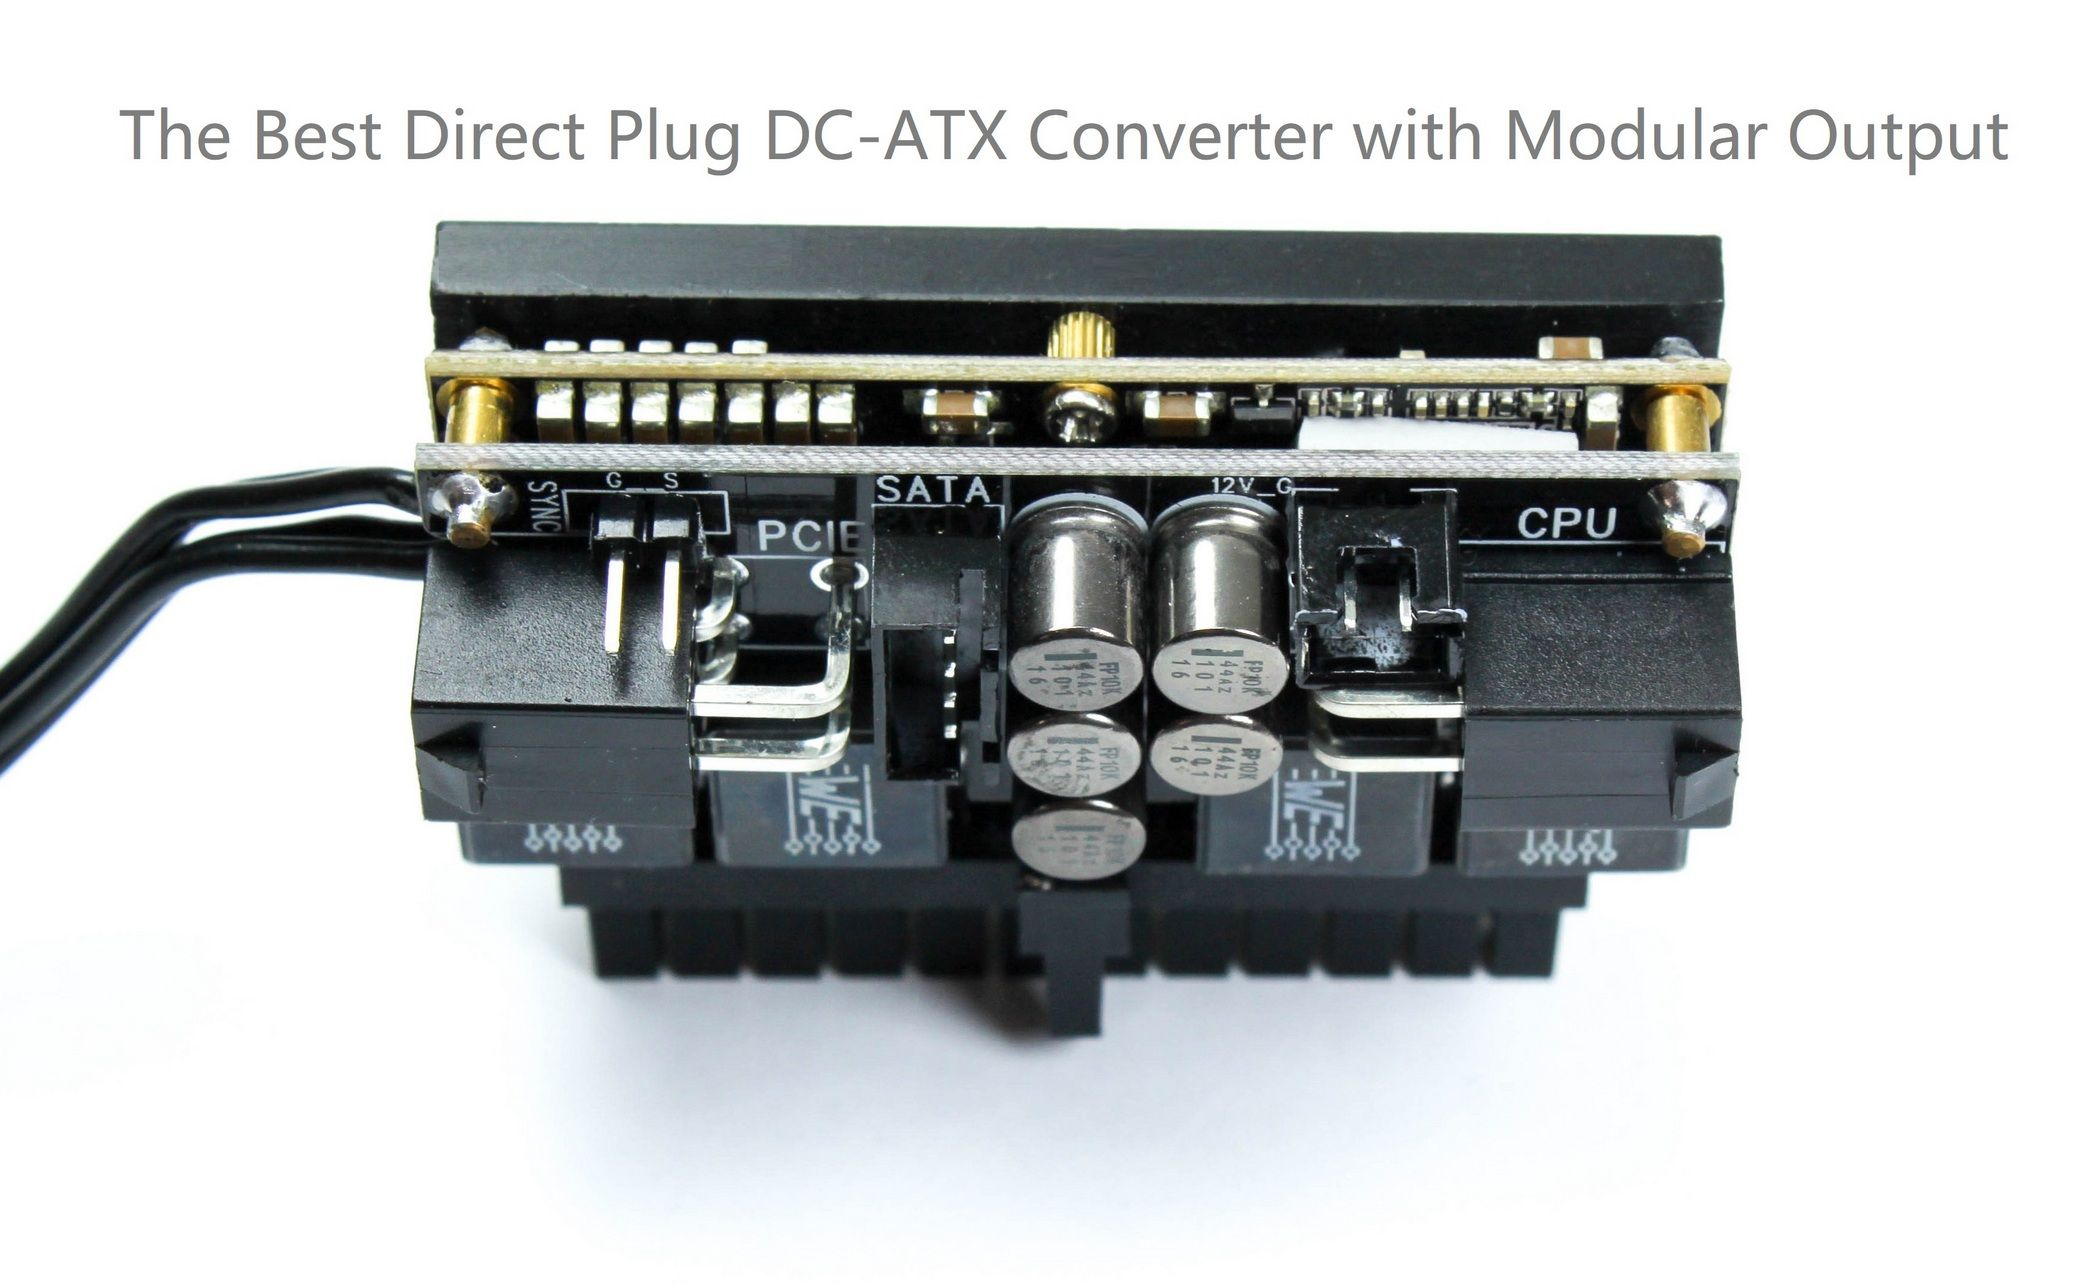 small resolution of hdplex direct plug 160w dc atx converter